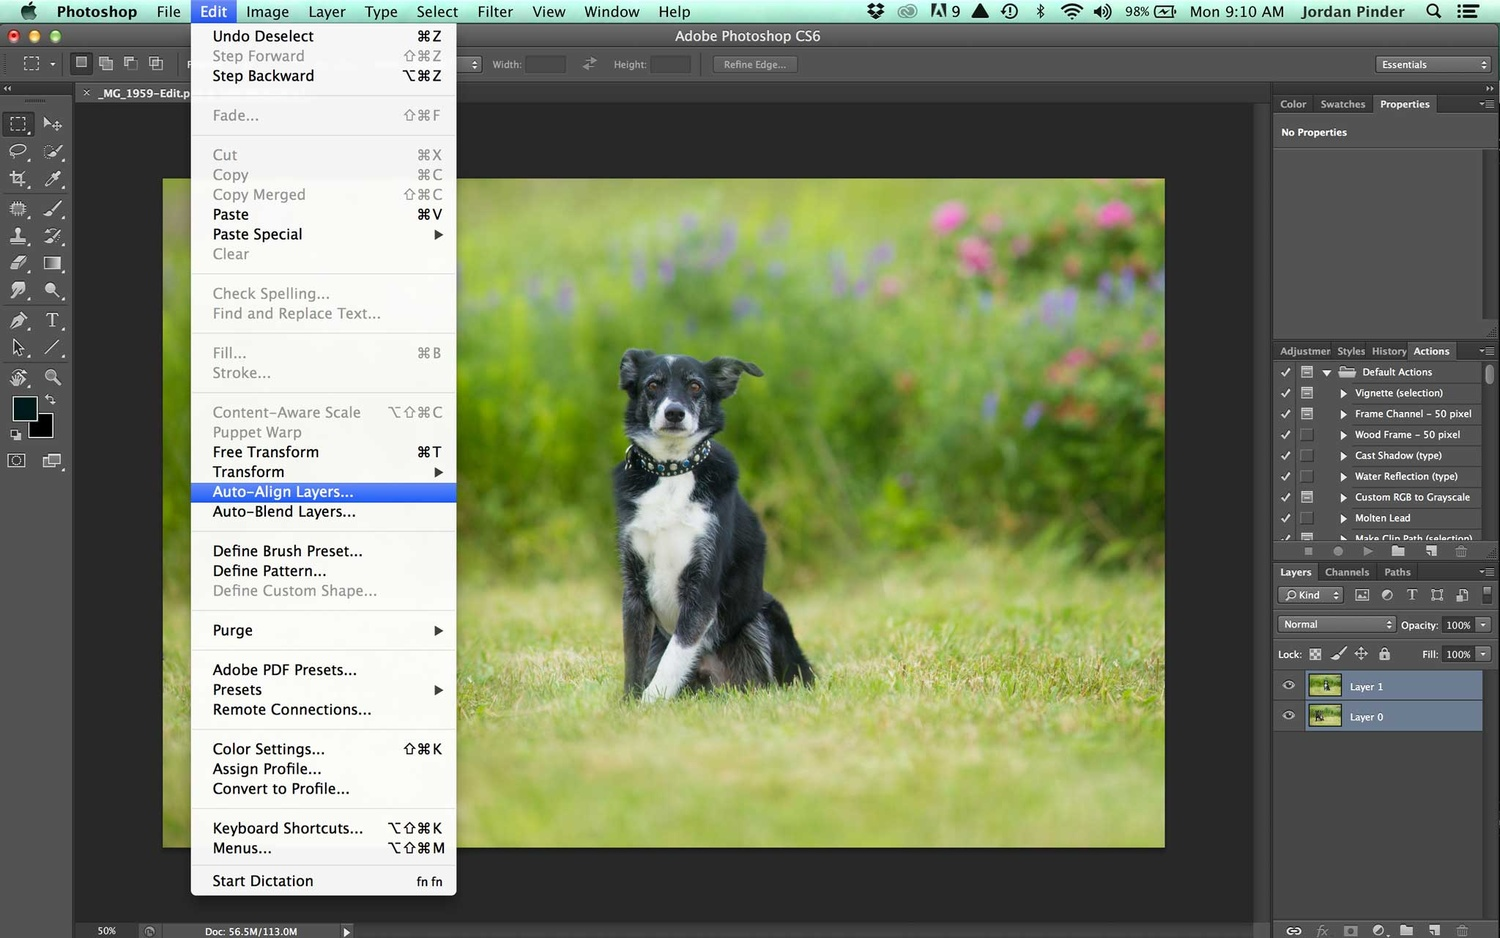 Compositing a dog group photo - Step 2